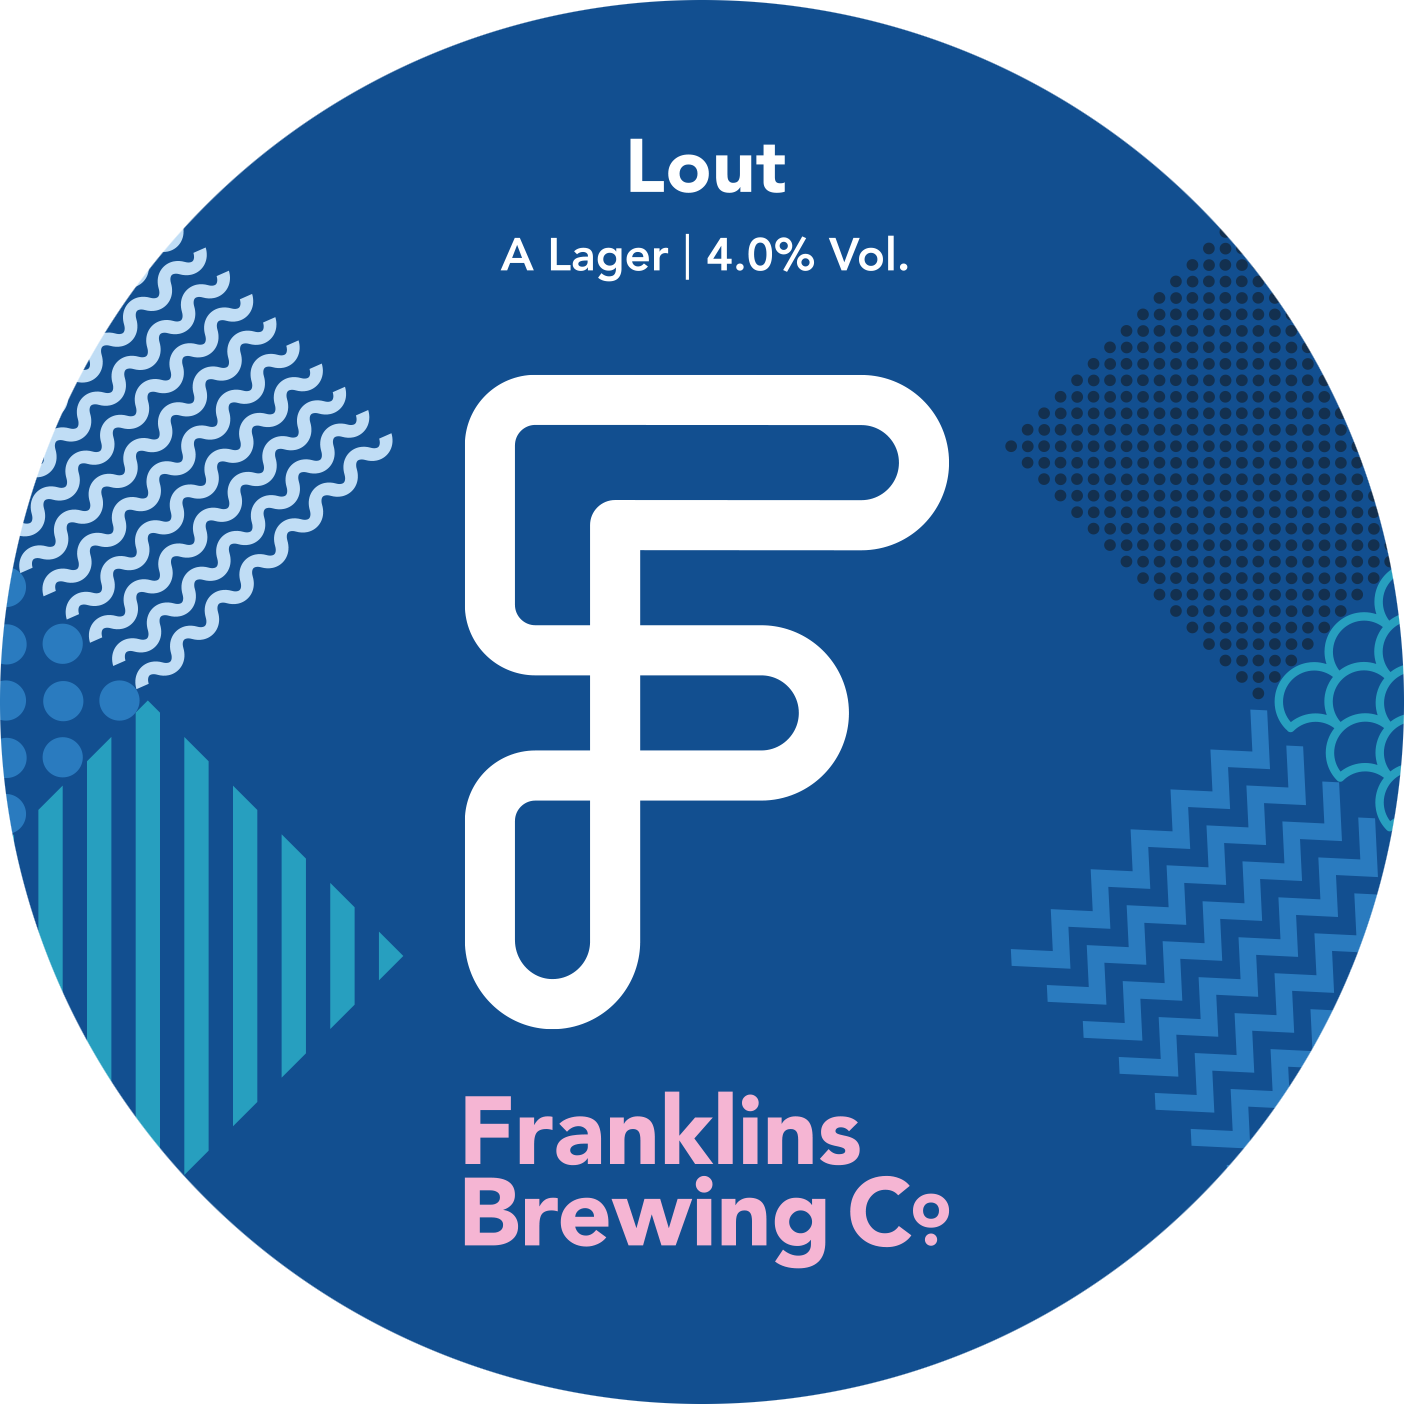 Franklins-Brewing-Co-Lout-Keg-Clip.png